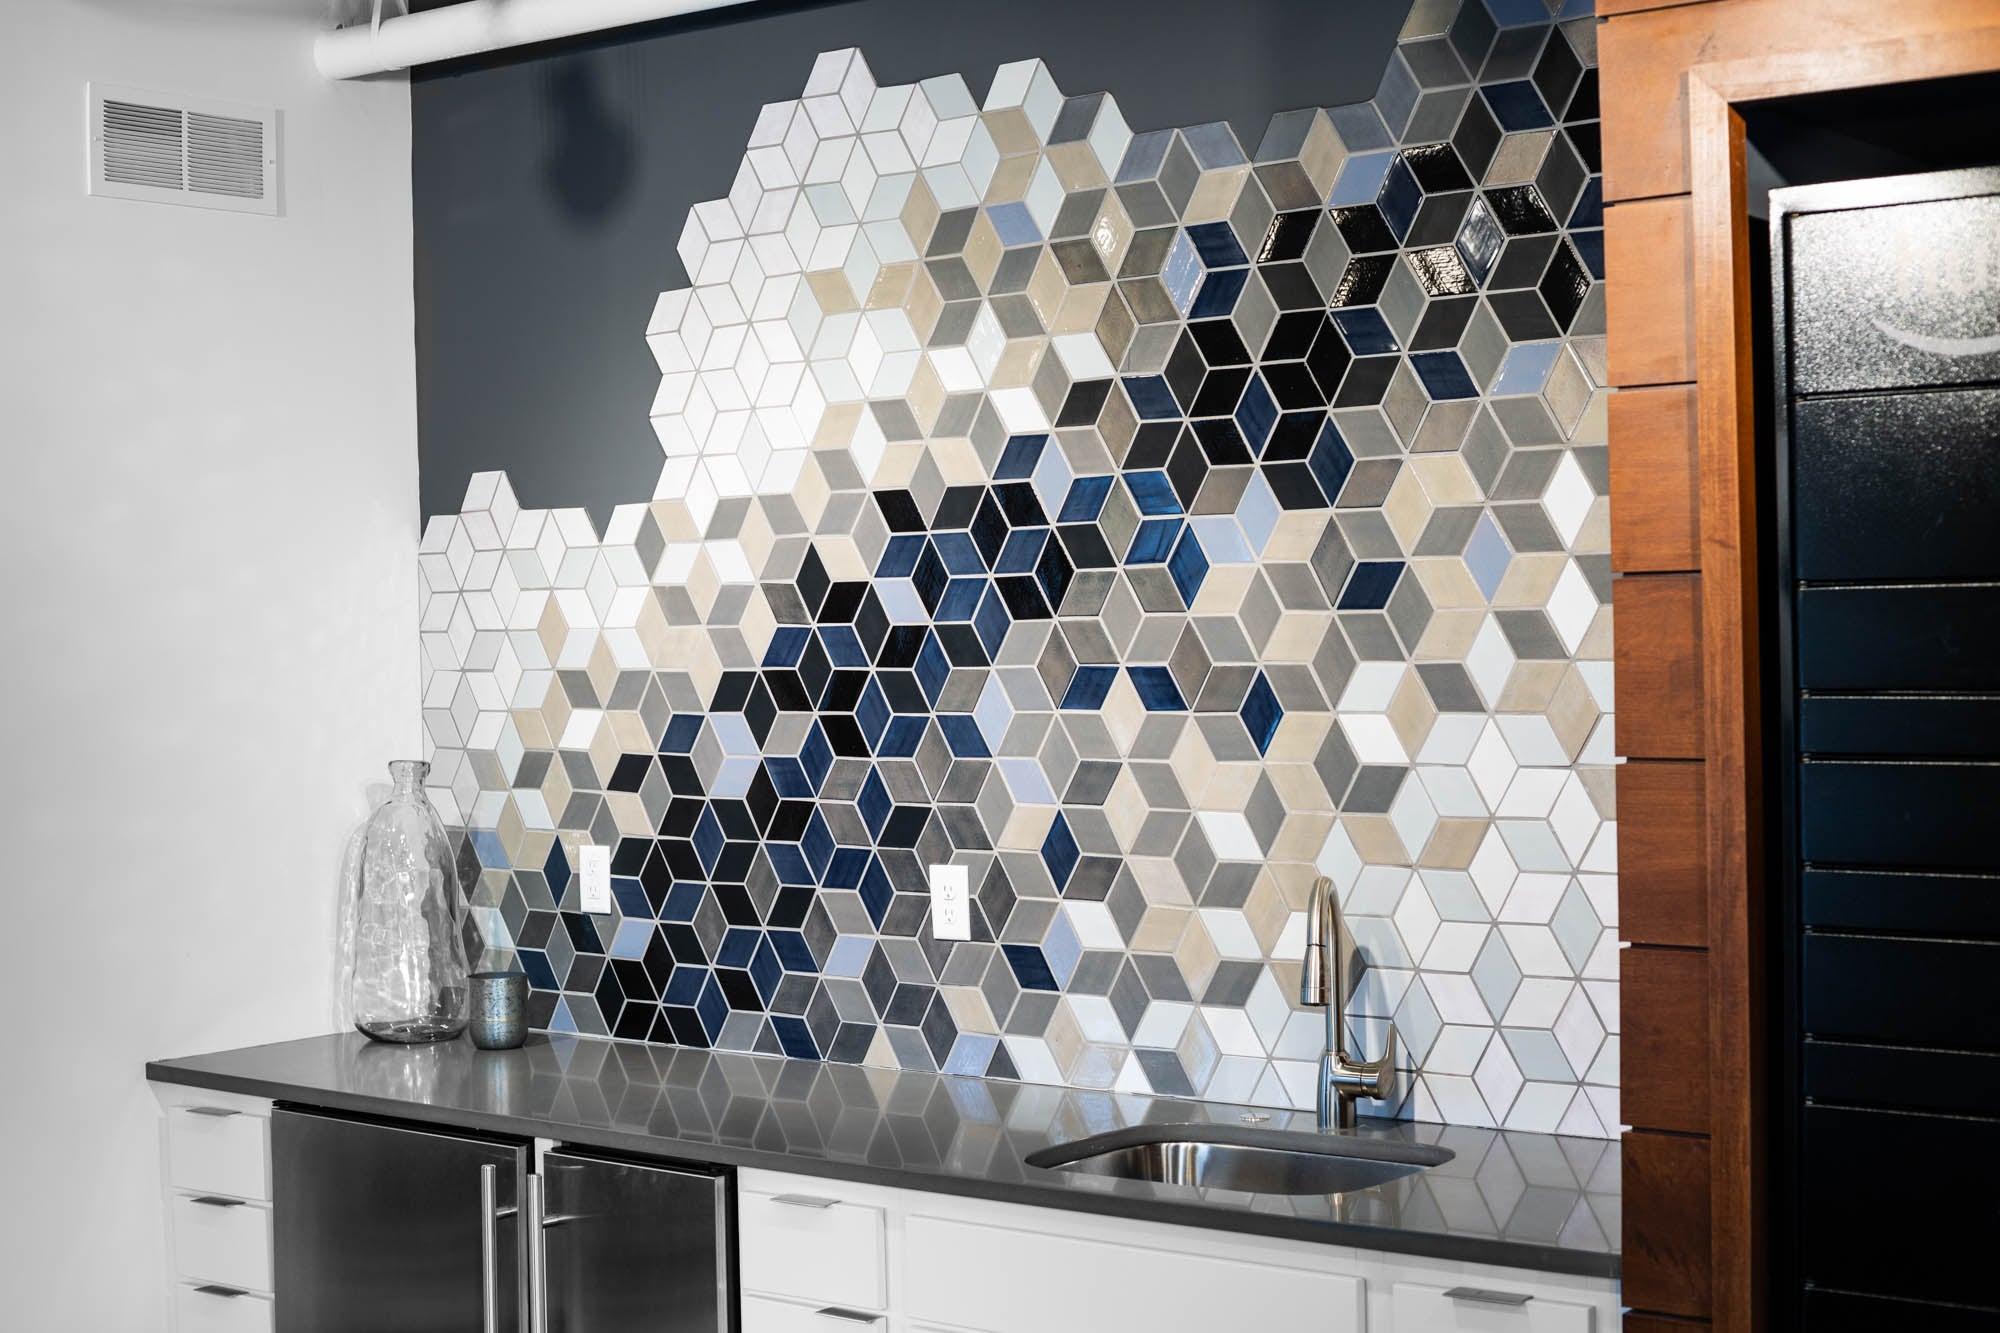 Ombre Statement Tile Backsplash